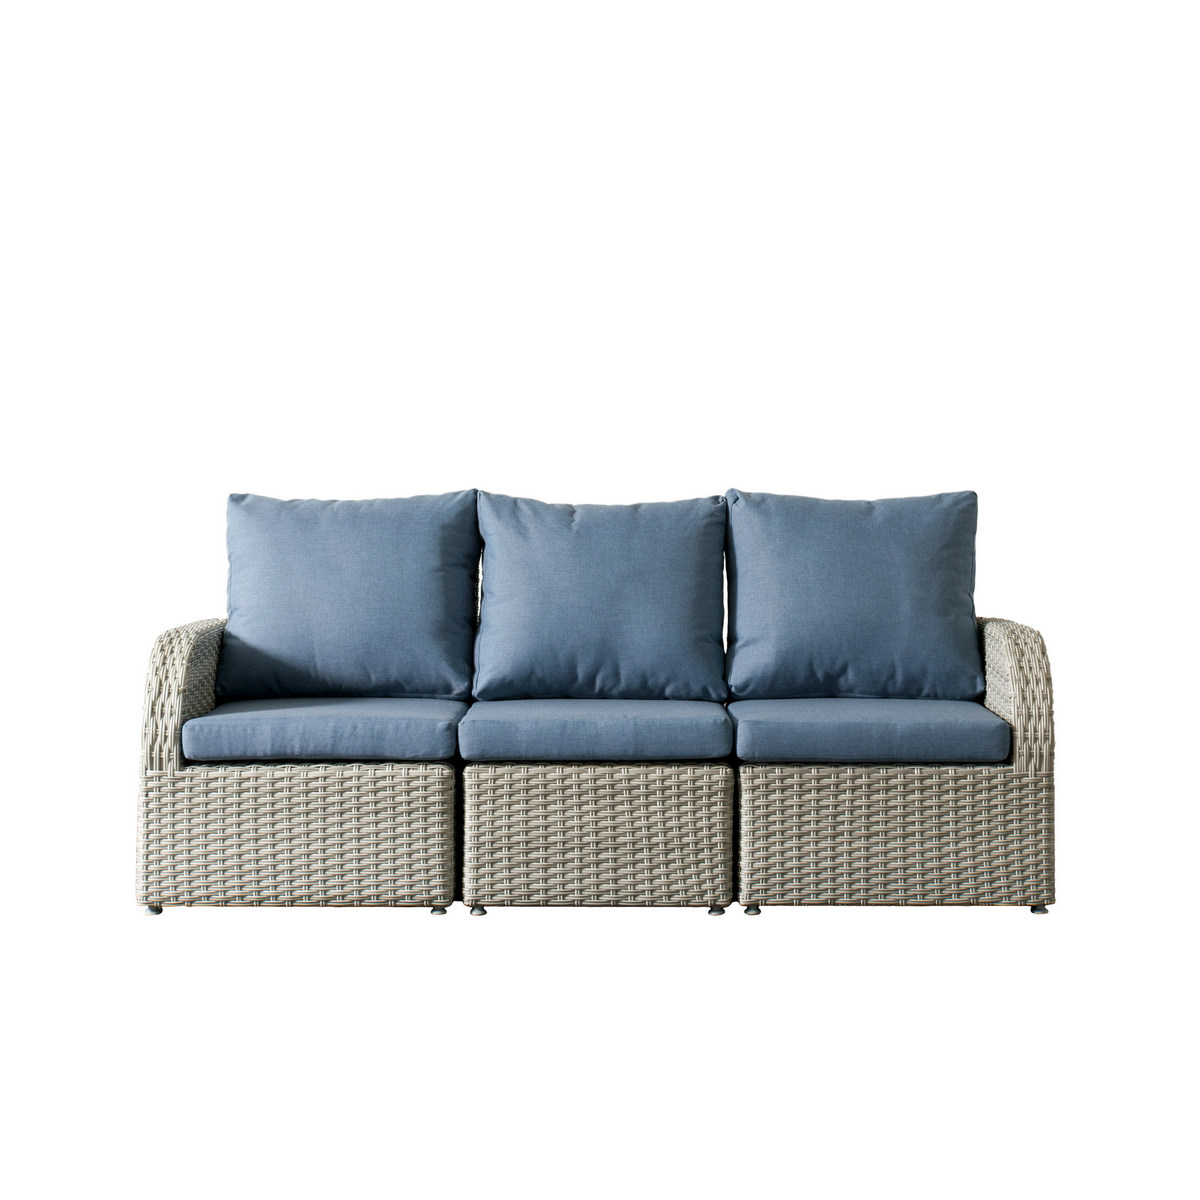 Corliving Pcl Brisbane Weather Resistant Resin Wicker Patio Set